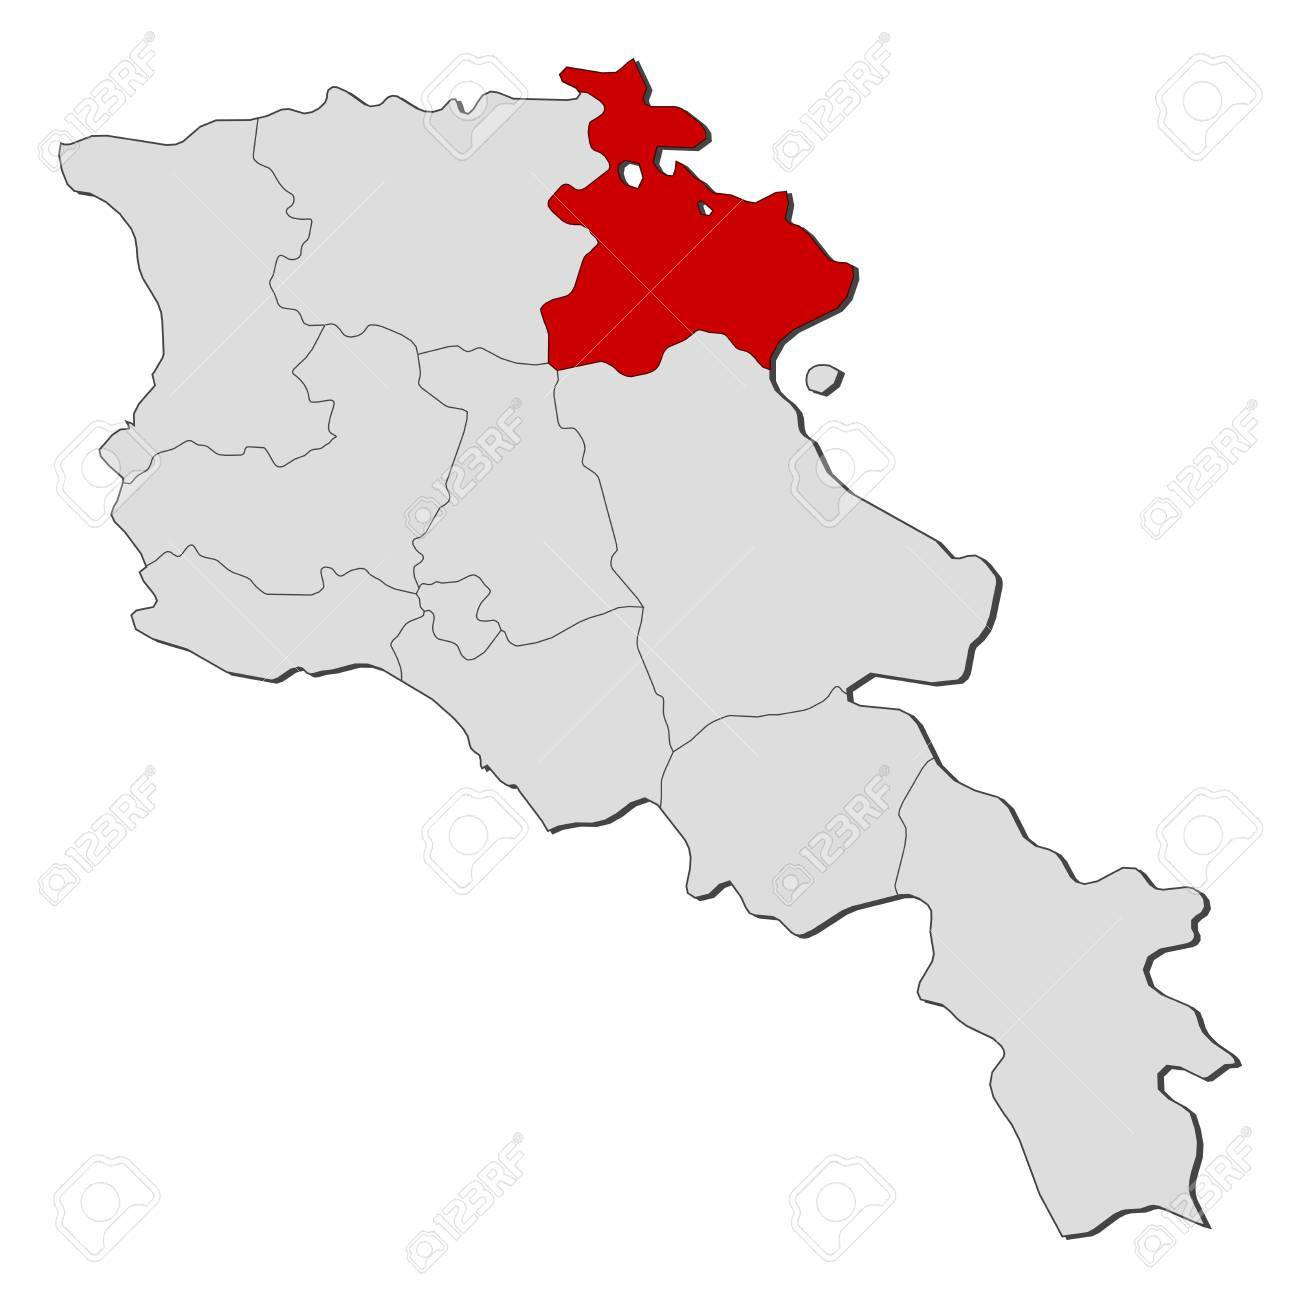 Political Map Of Armenia With The Several States Where Tavush - Political map of armenia